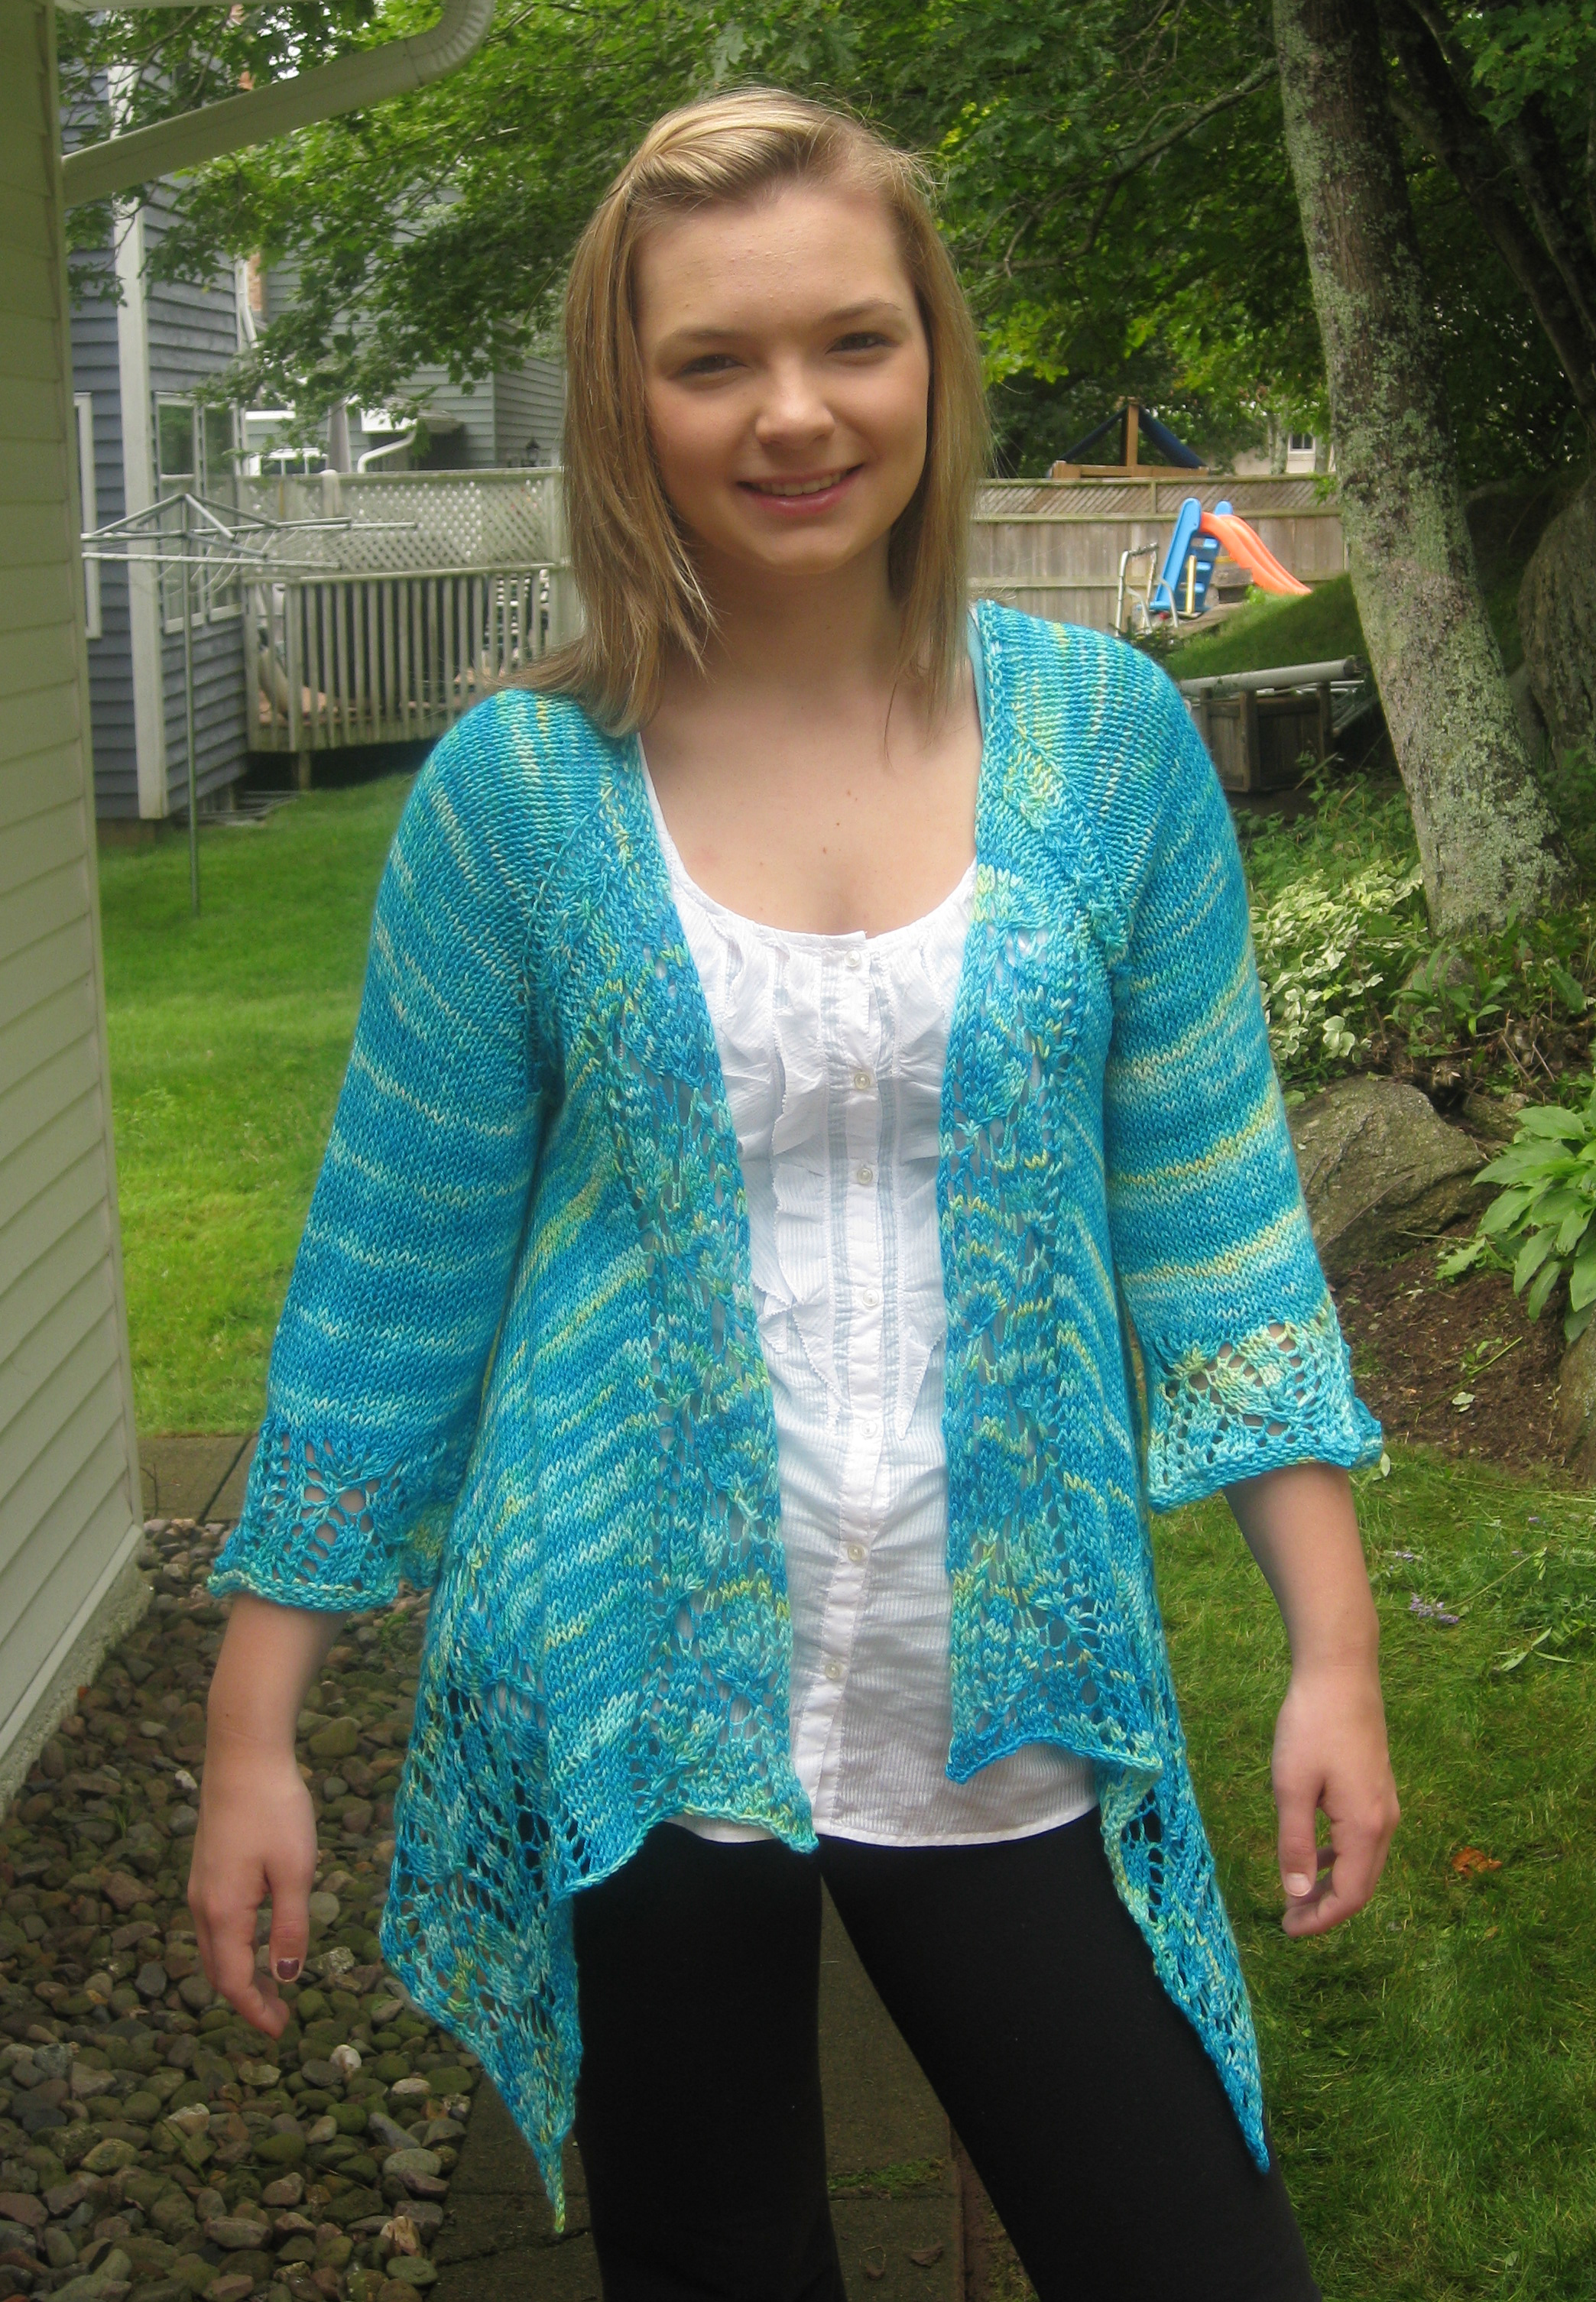 f6812dadb15d 112 Dramatic Lace Top-Down Wrap Cardigan - Knitting Patterns Blog ...